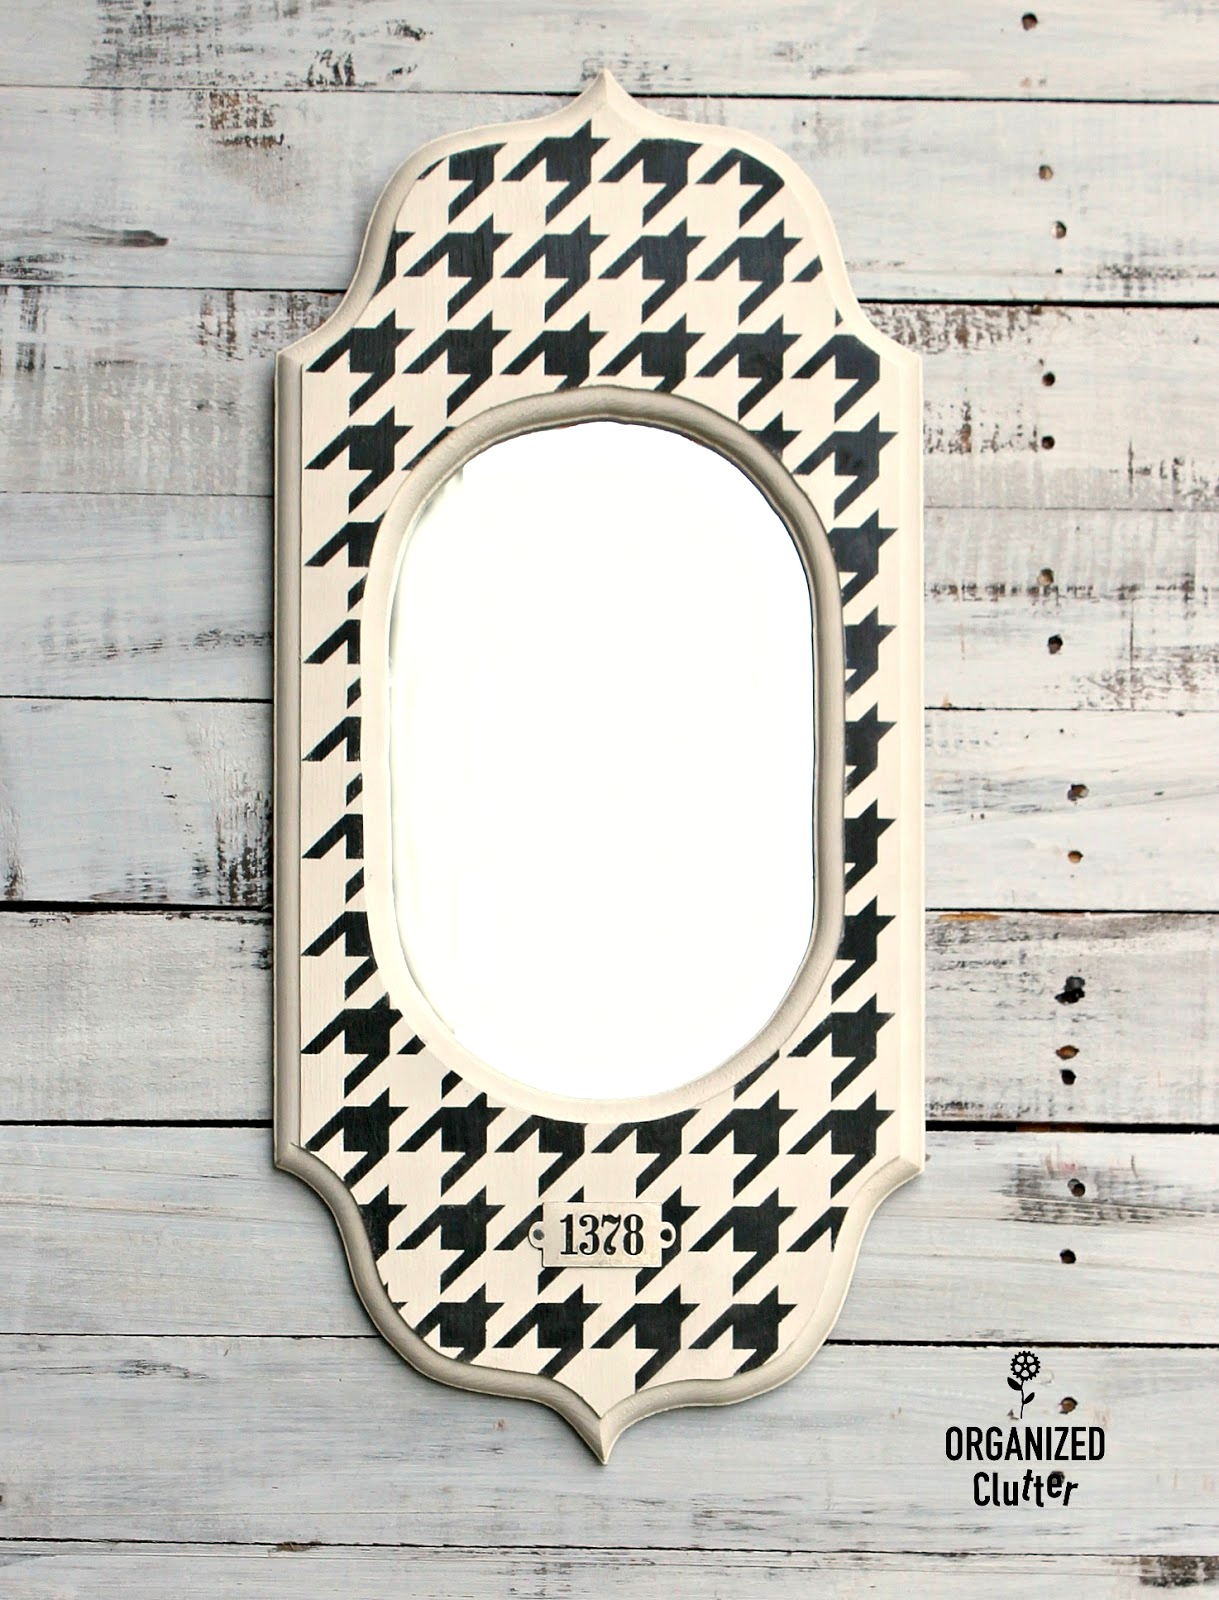 Houndstooth revamped thrift store mirror frame by Organized Clutter, featured on Funky Junk Interiors